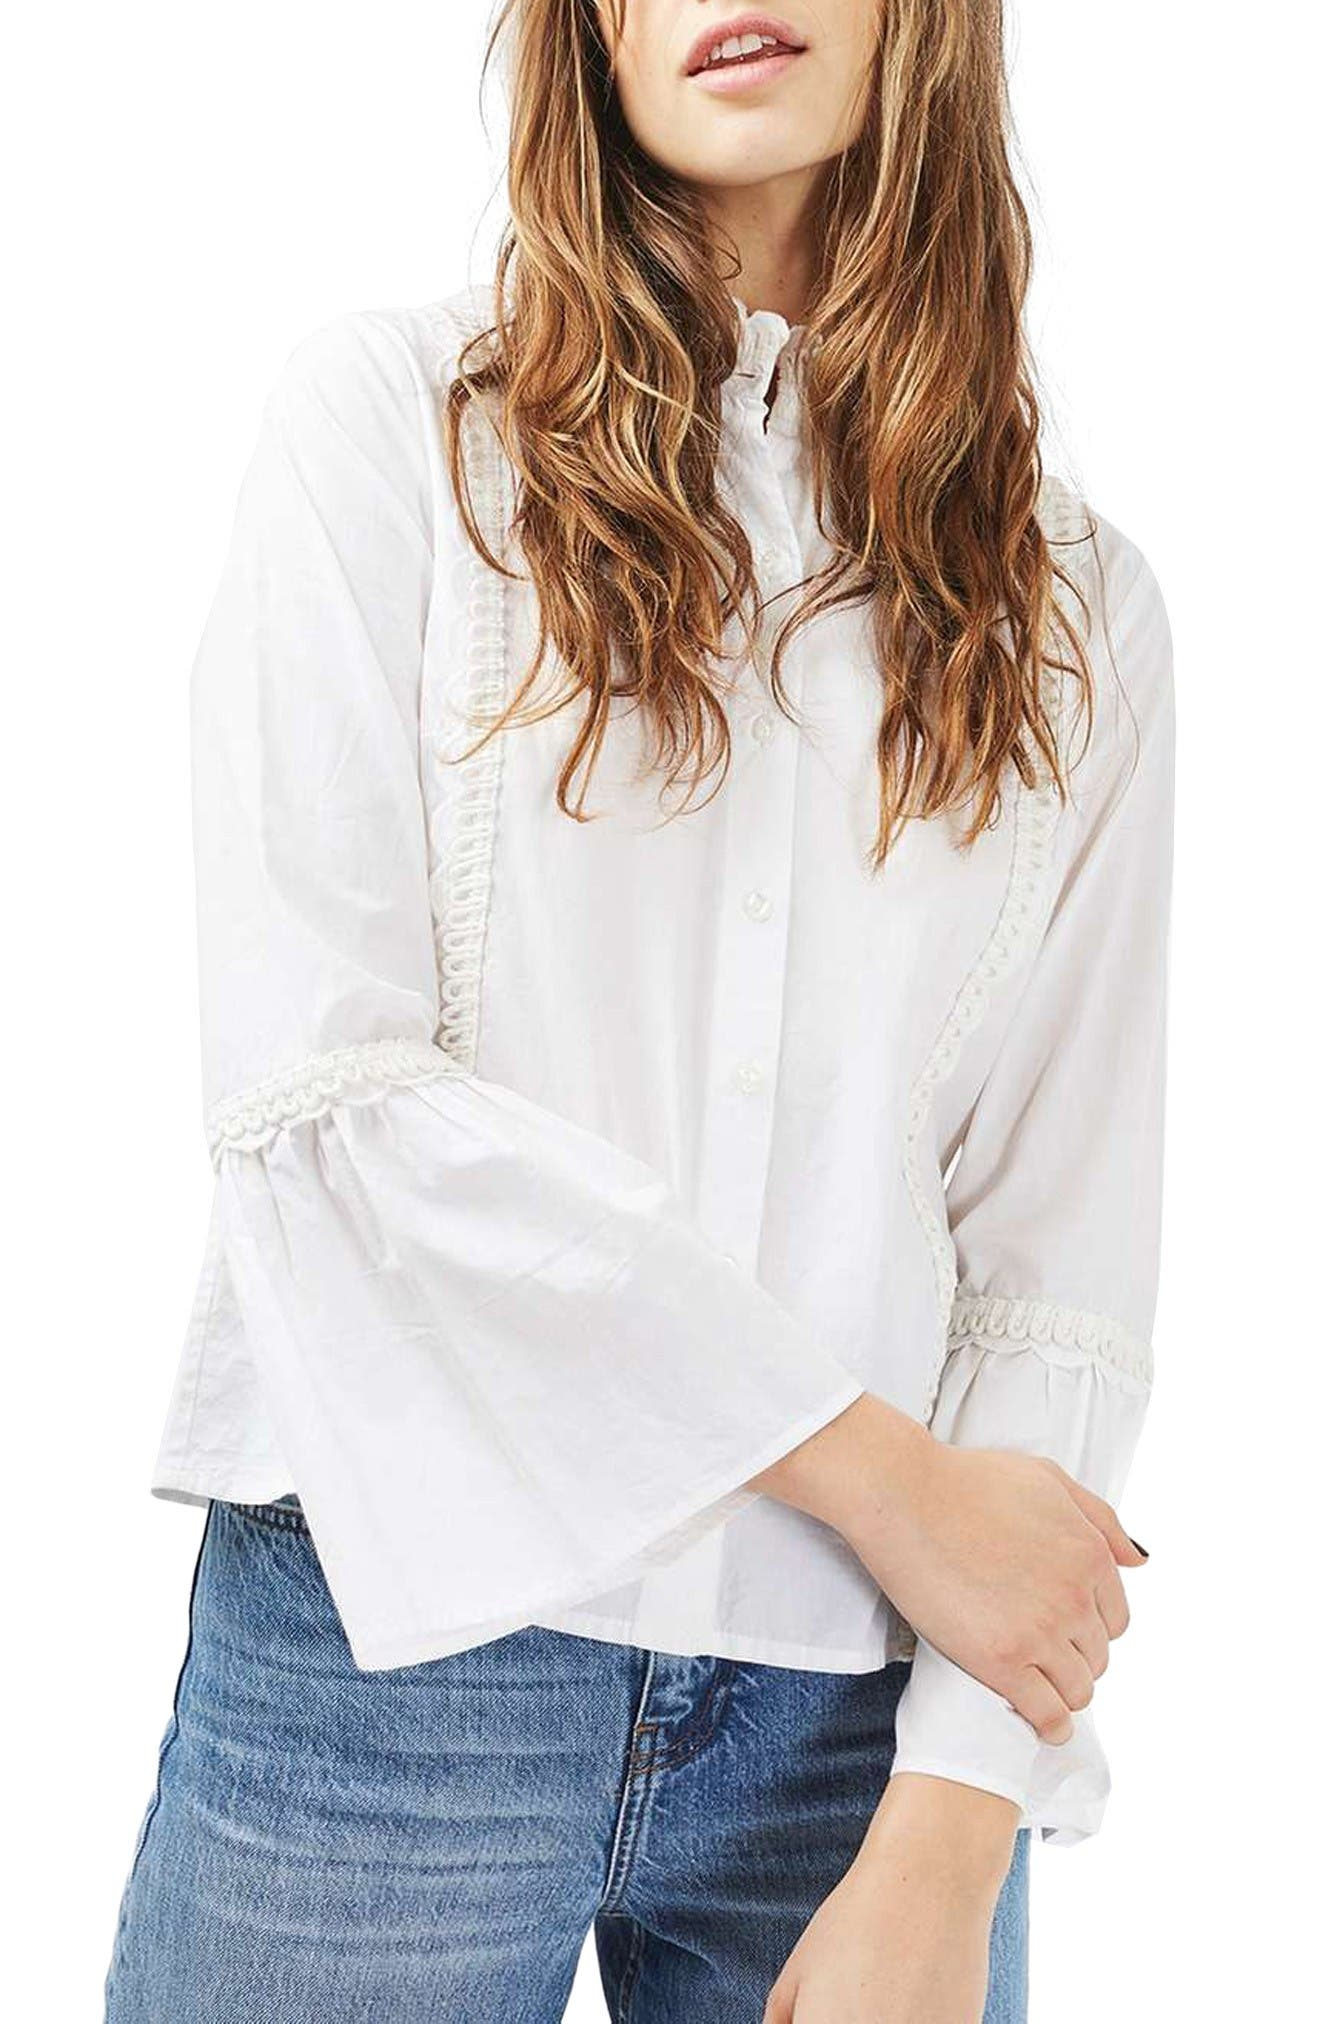 Main Image - Topshop Cotton Poplin Ruffle Blouse